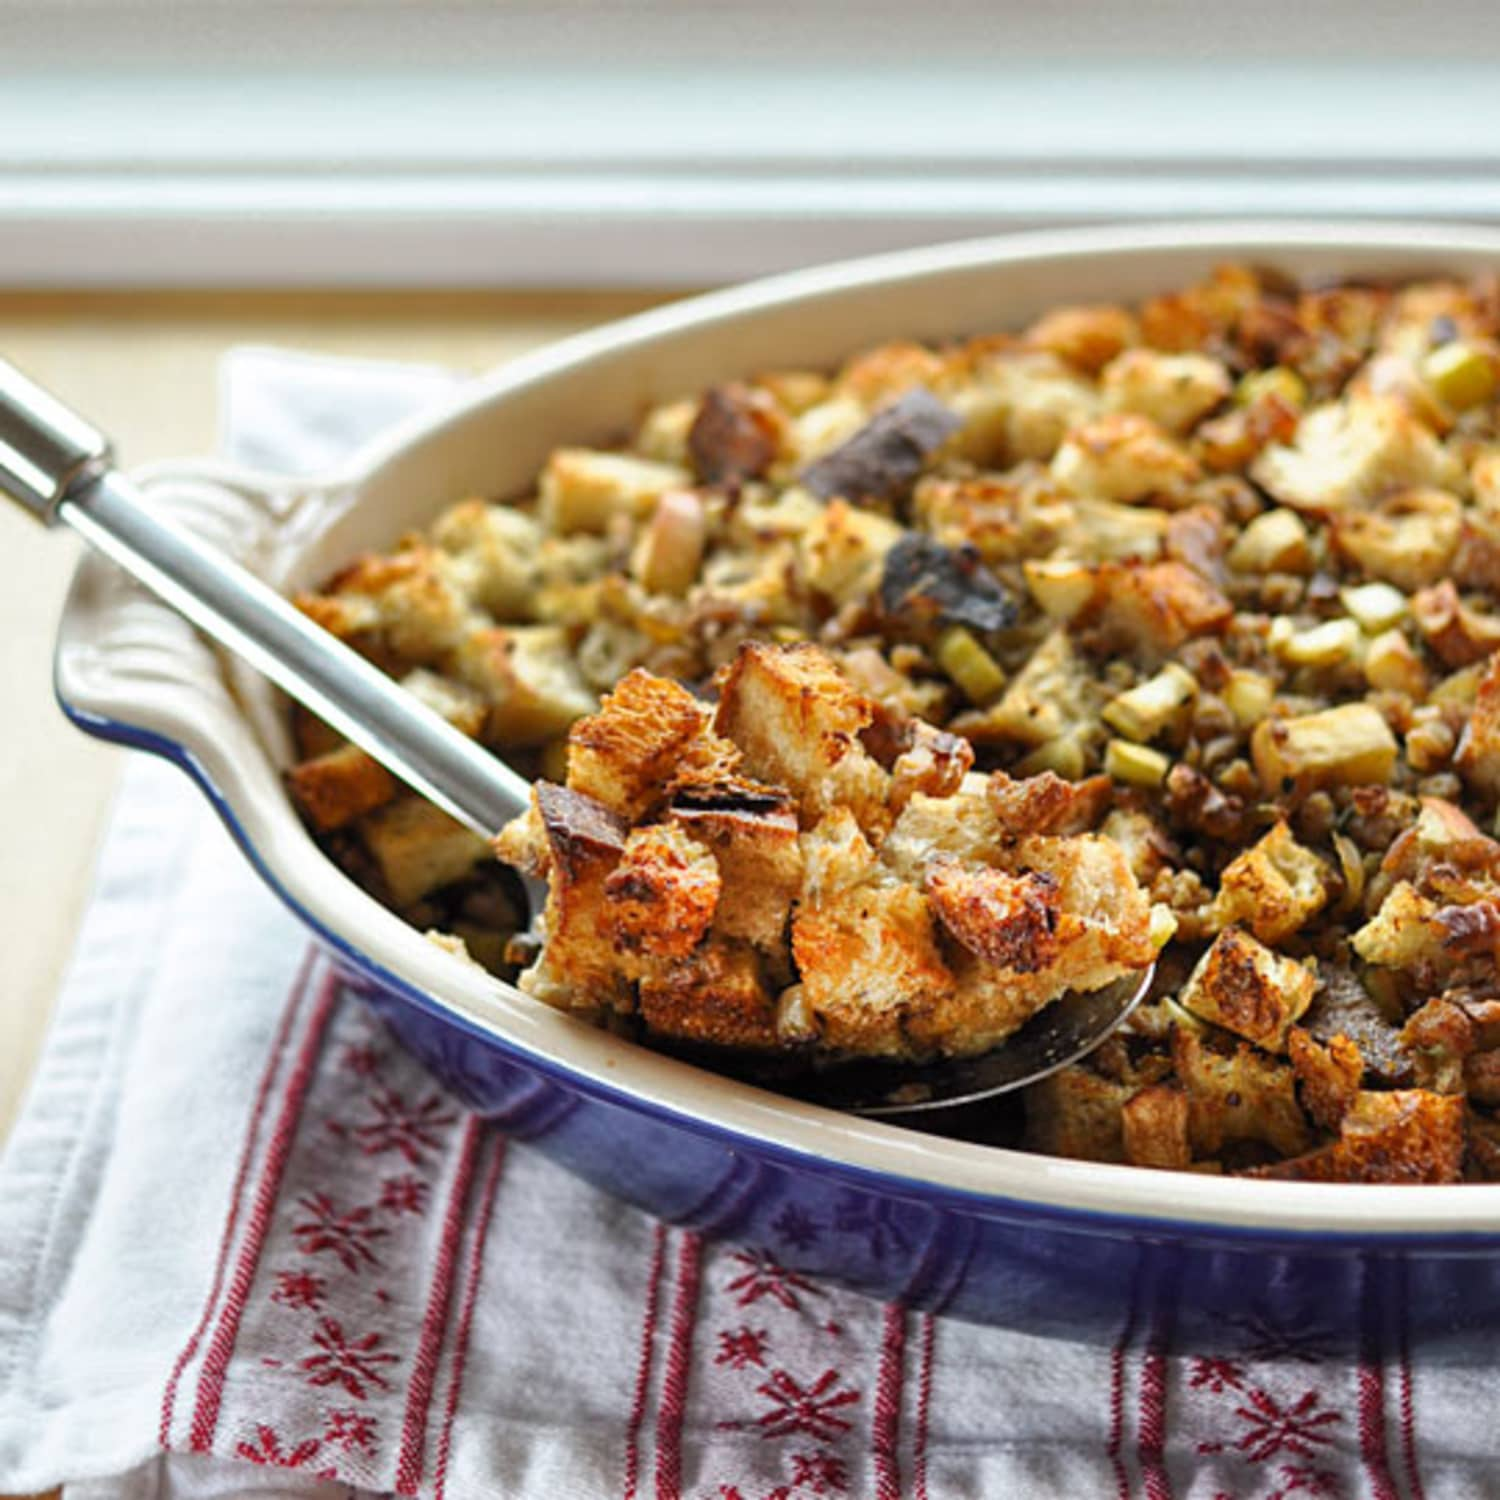 Can You Recommend A Great Vegetarian Stuffing Recipe?